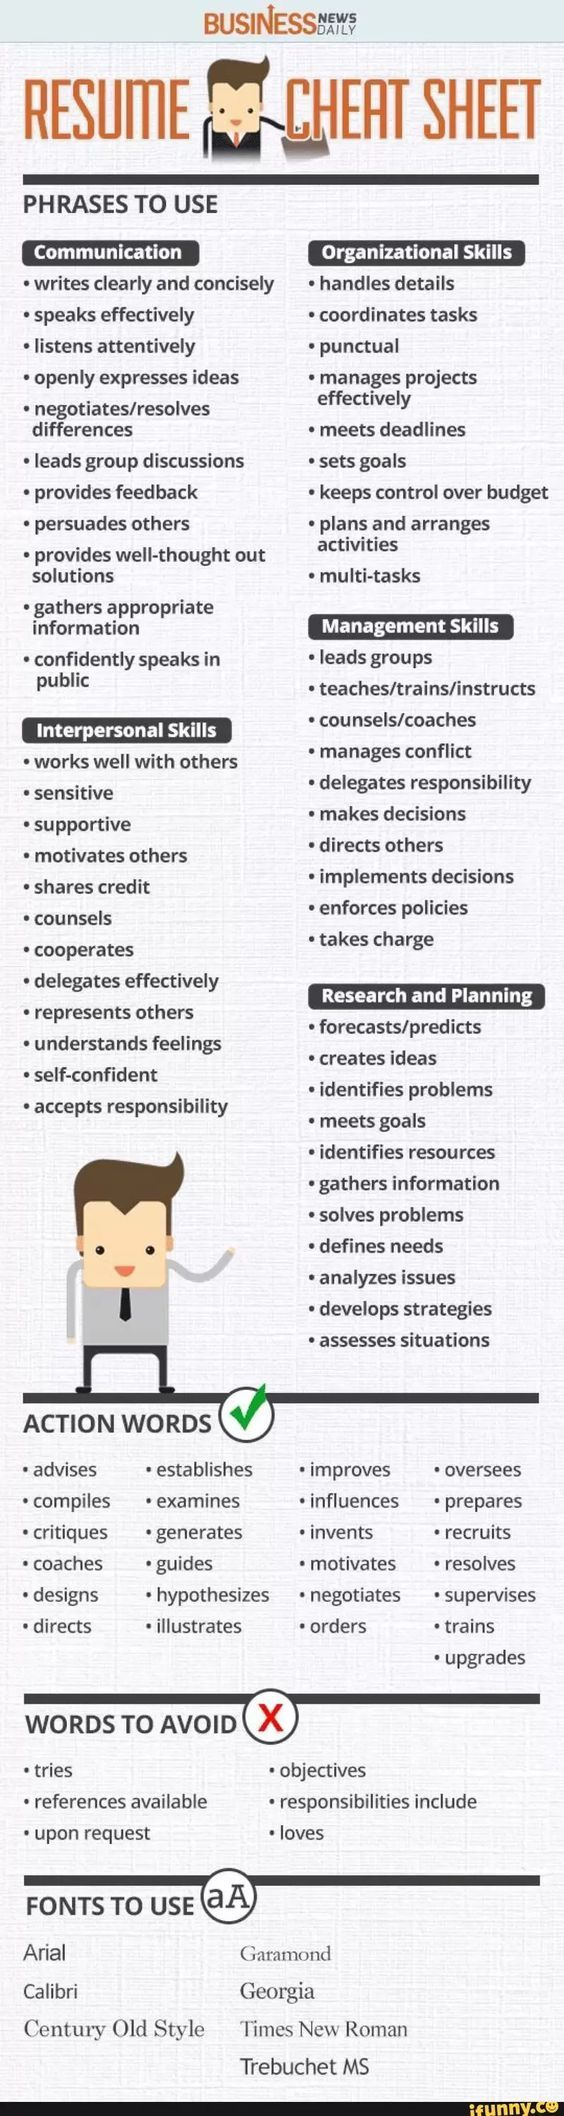 Resume buzzwords by strengths